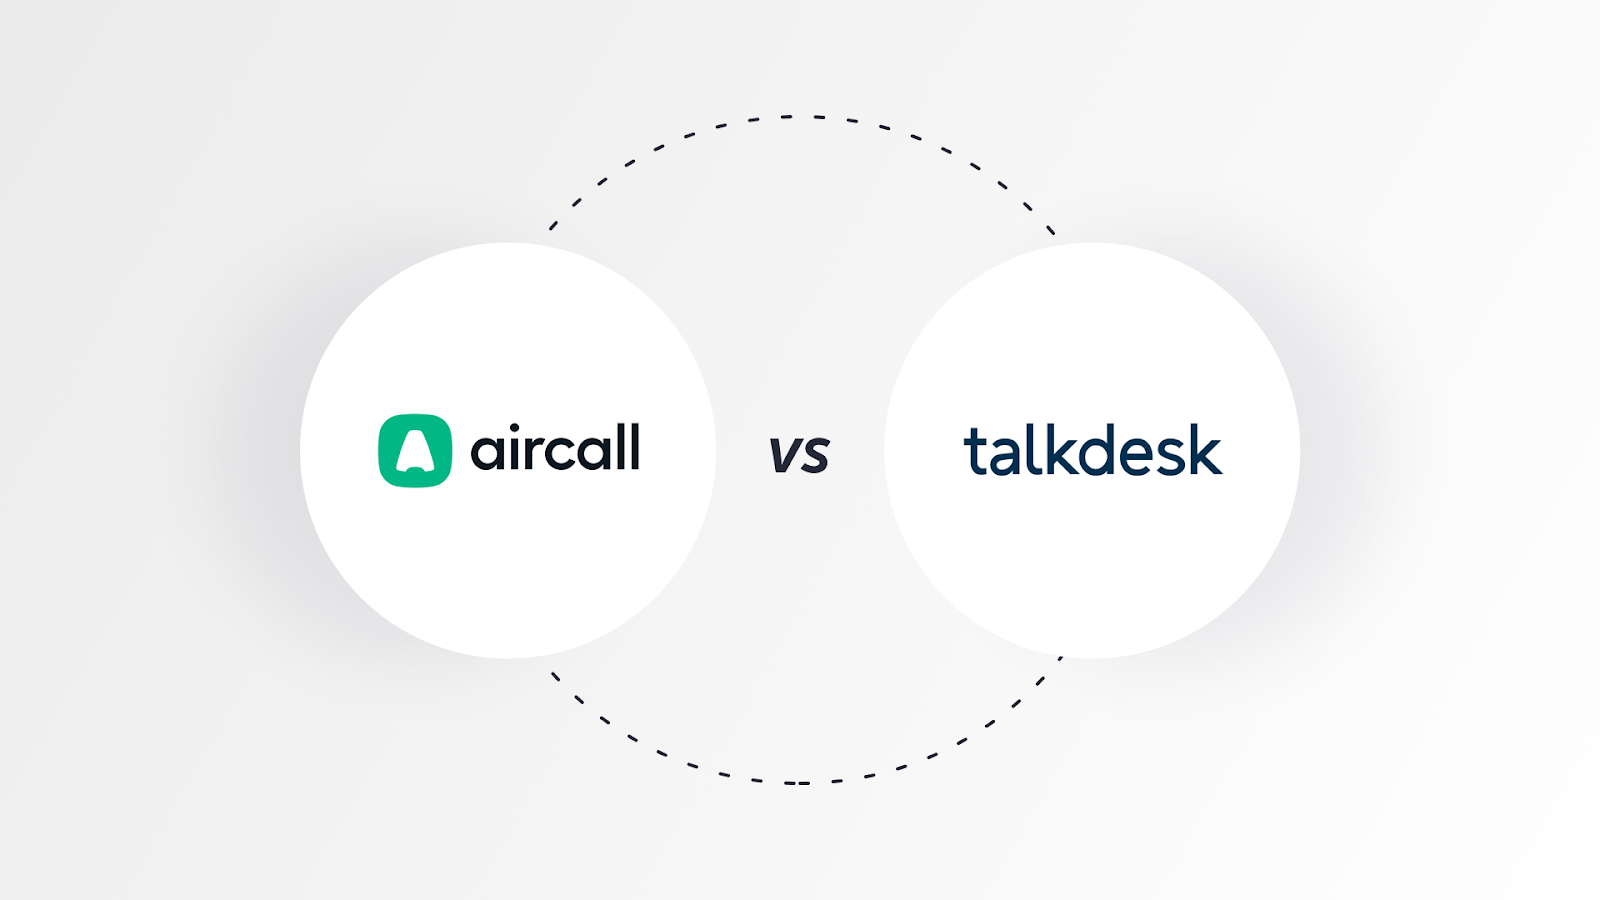 Aircall vs Talkdesk: Which cloud telephony system is best for modern teams?